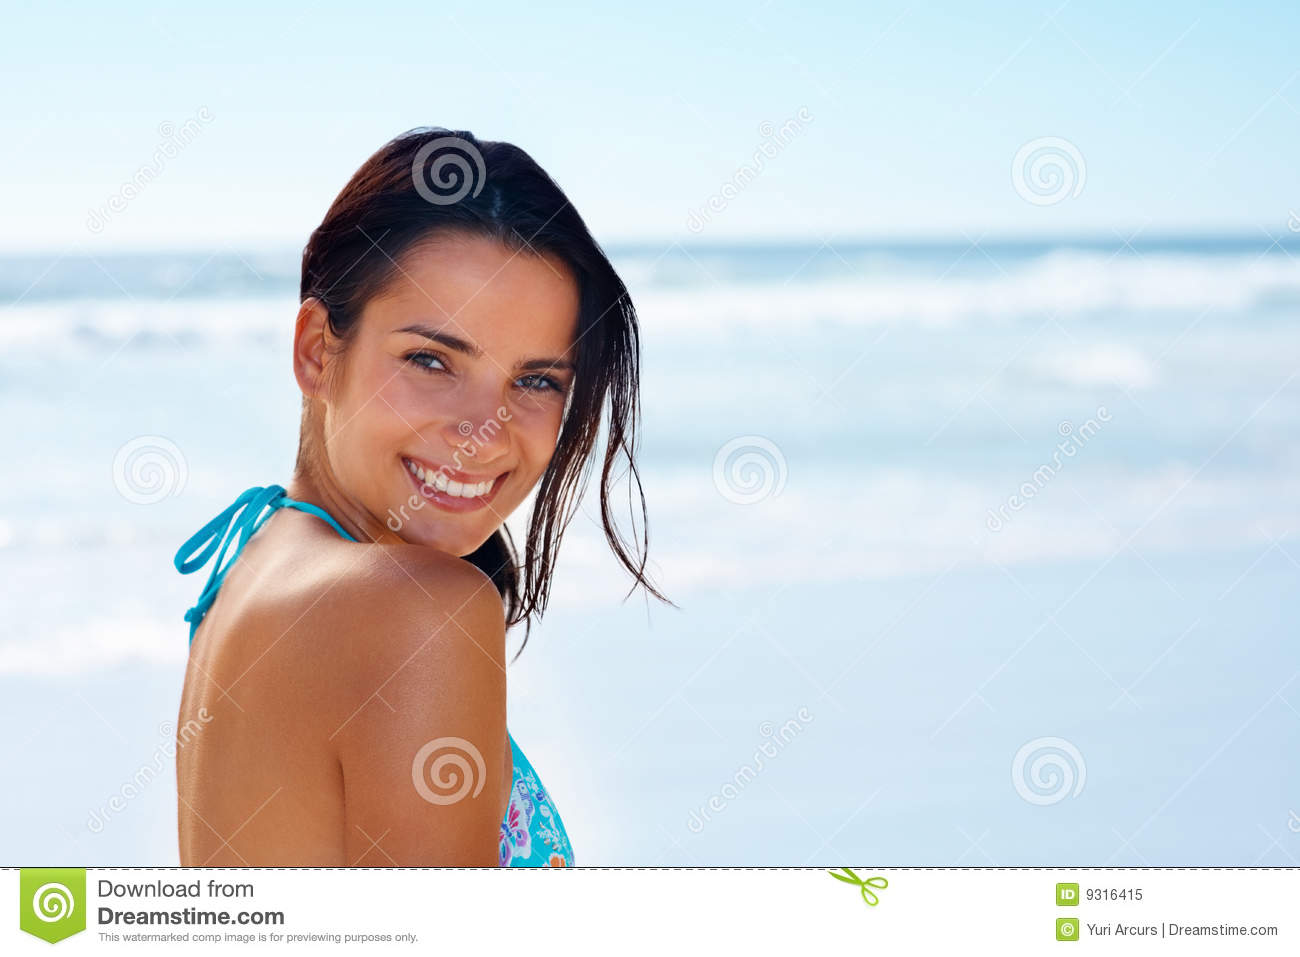 Royalty Free Stock Photo Charming Teenage Girl Smiling On The Beach Image 9316415